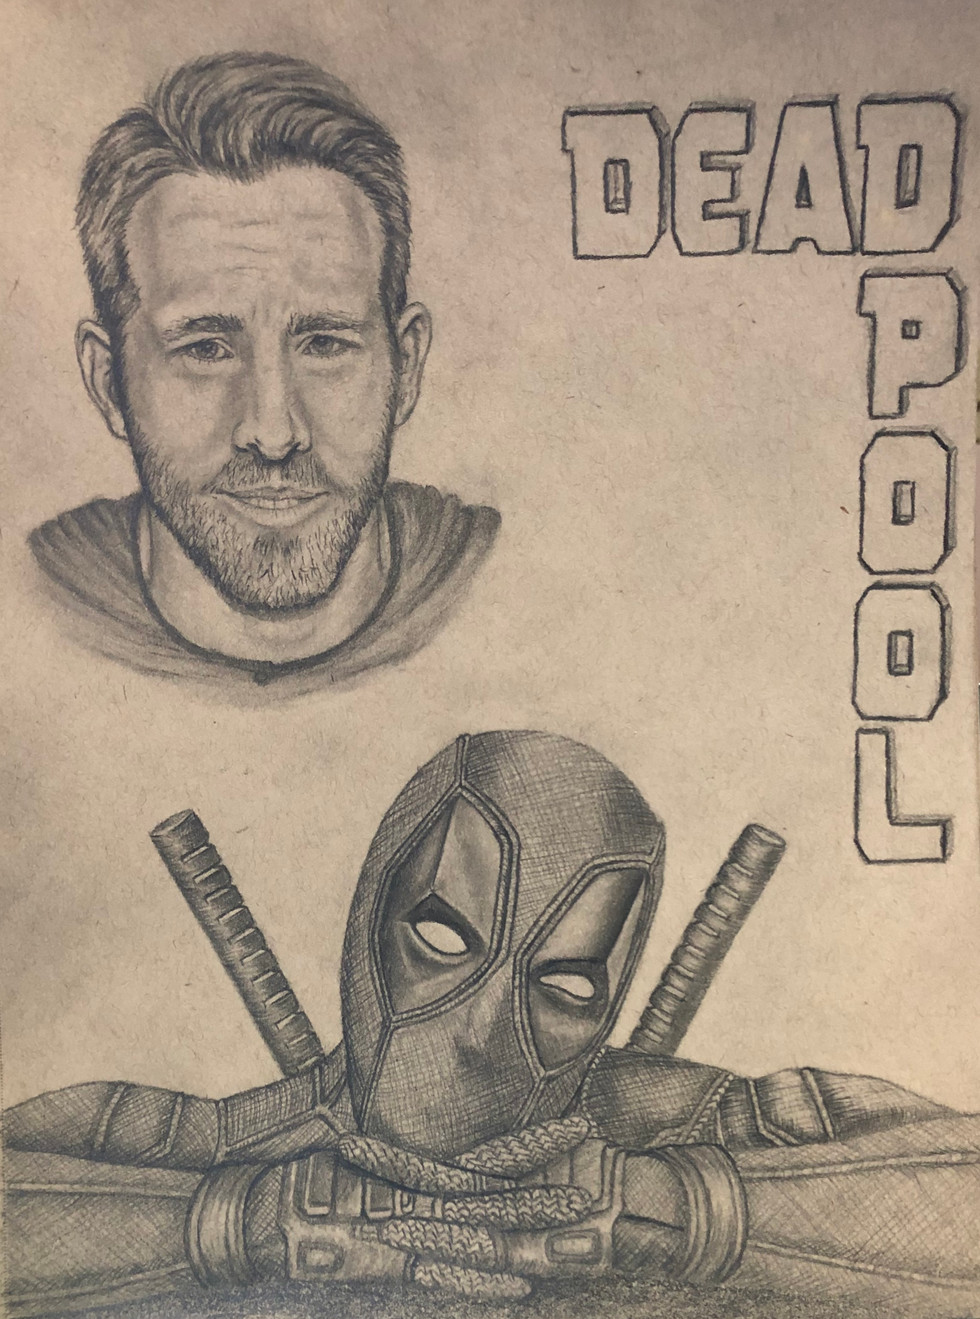 Deadpool / Ryan Reynolds